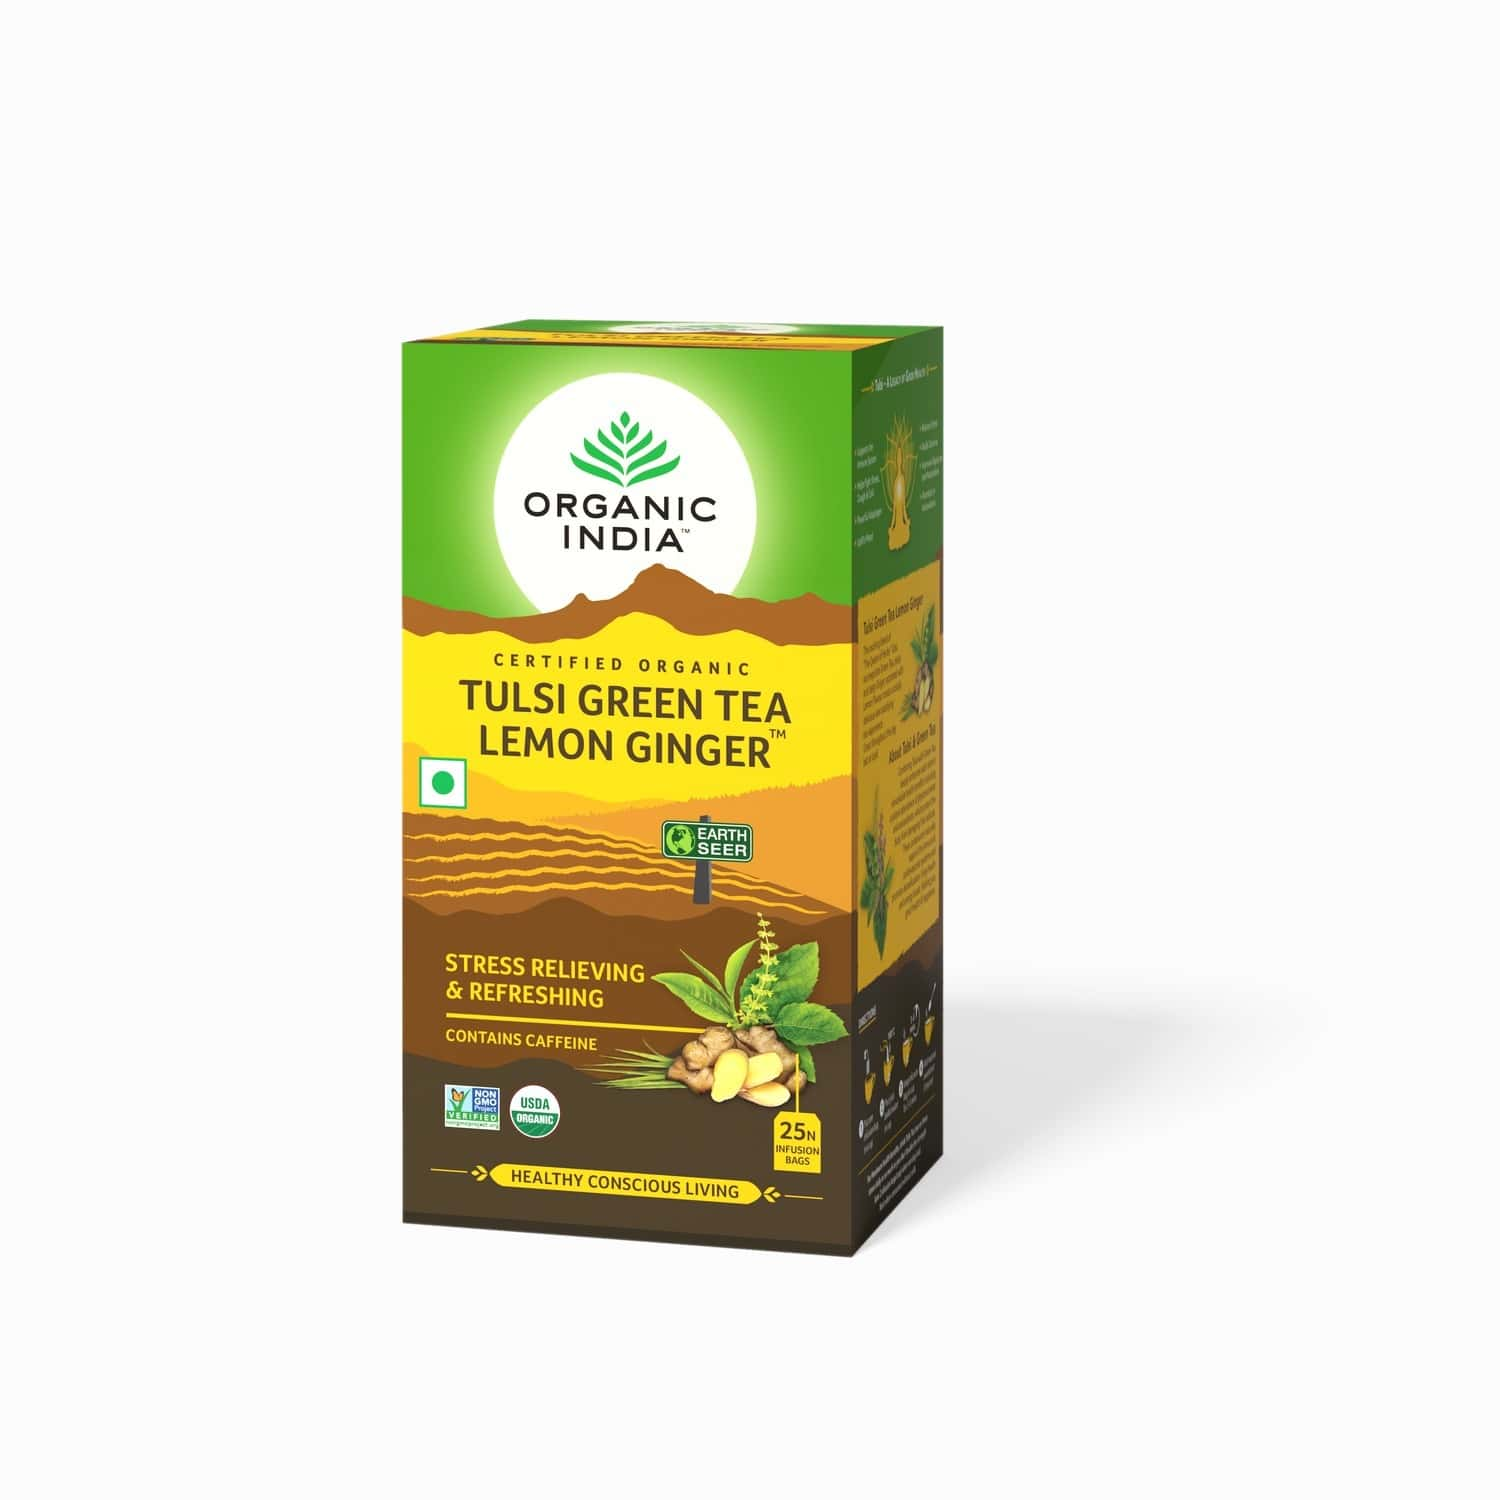 Organic India Tulsi Green Tea Lemon Ginger Tea Bag 25's